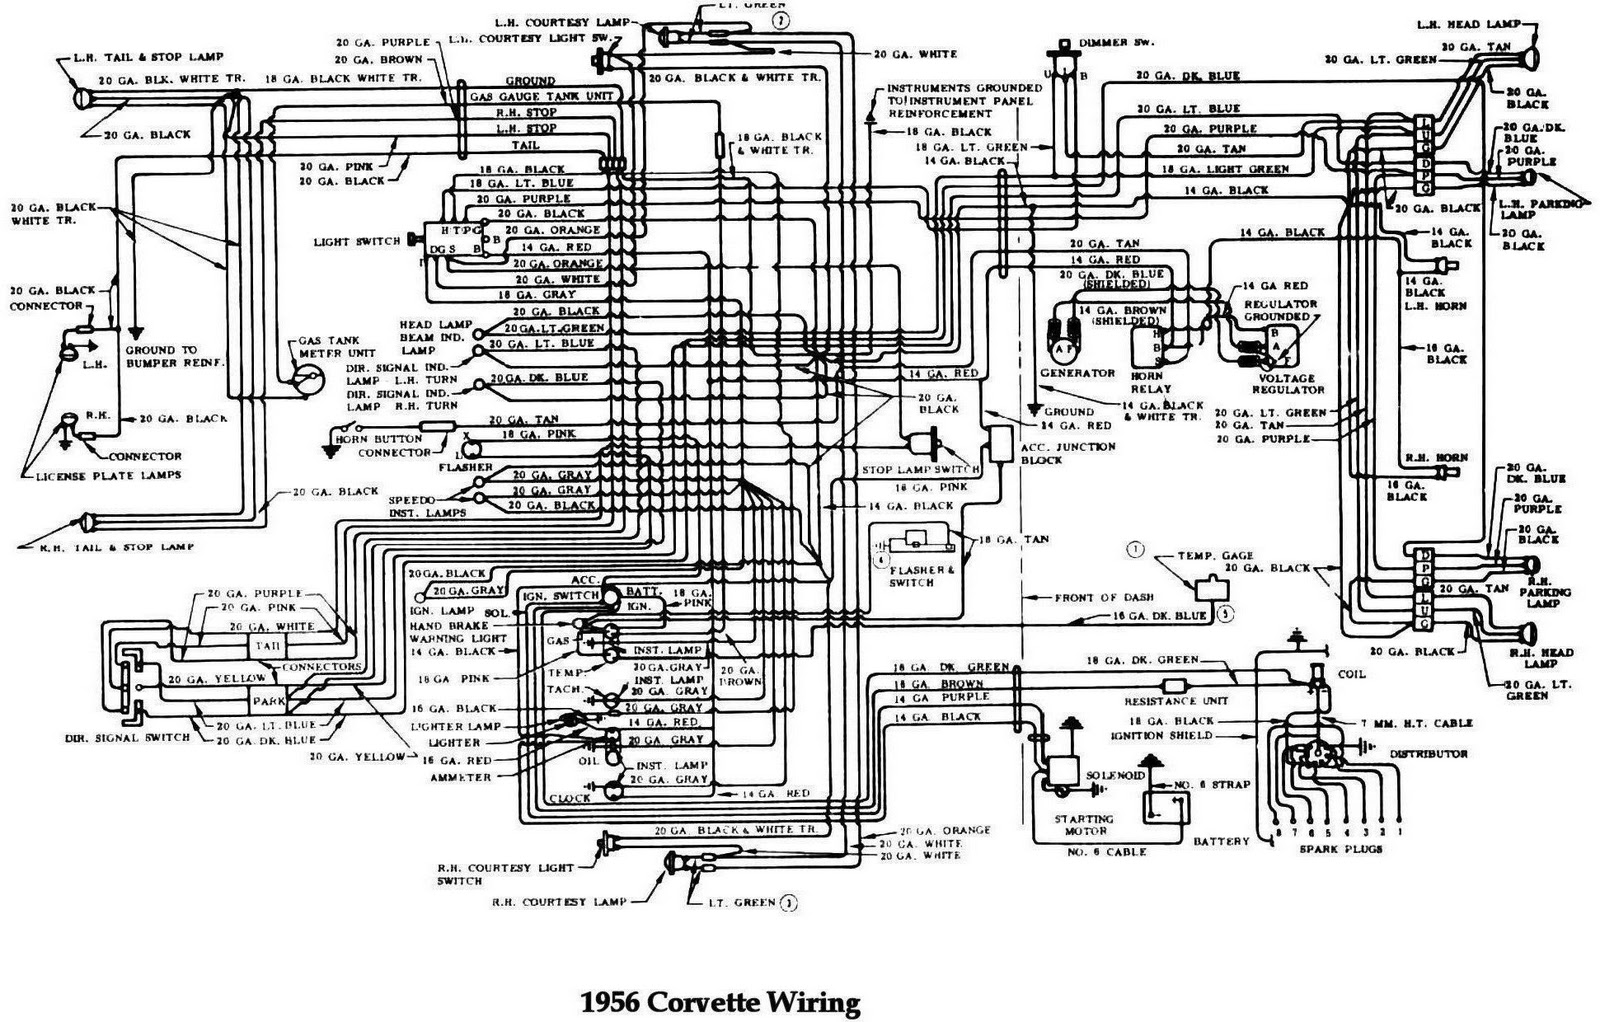 1956 Chevrolet Corvette Wiring Diagram: 1962 Corvette Rear Tail Lights Wiring Diagram At Nayabfun.com